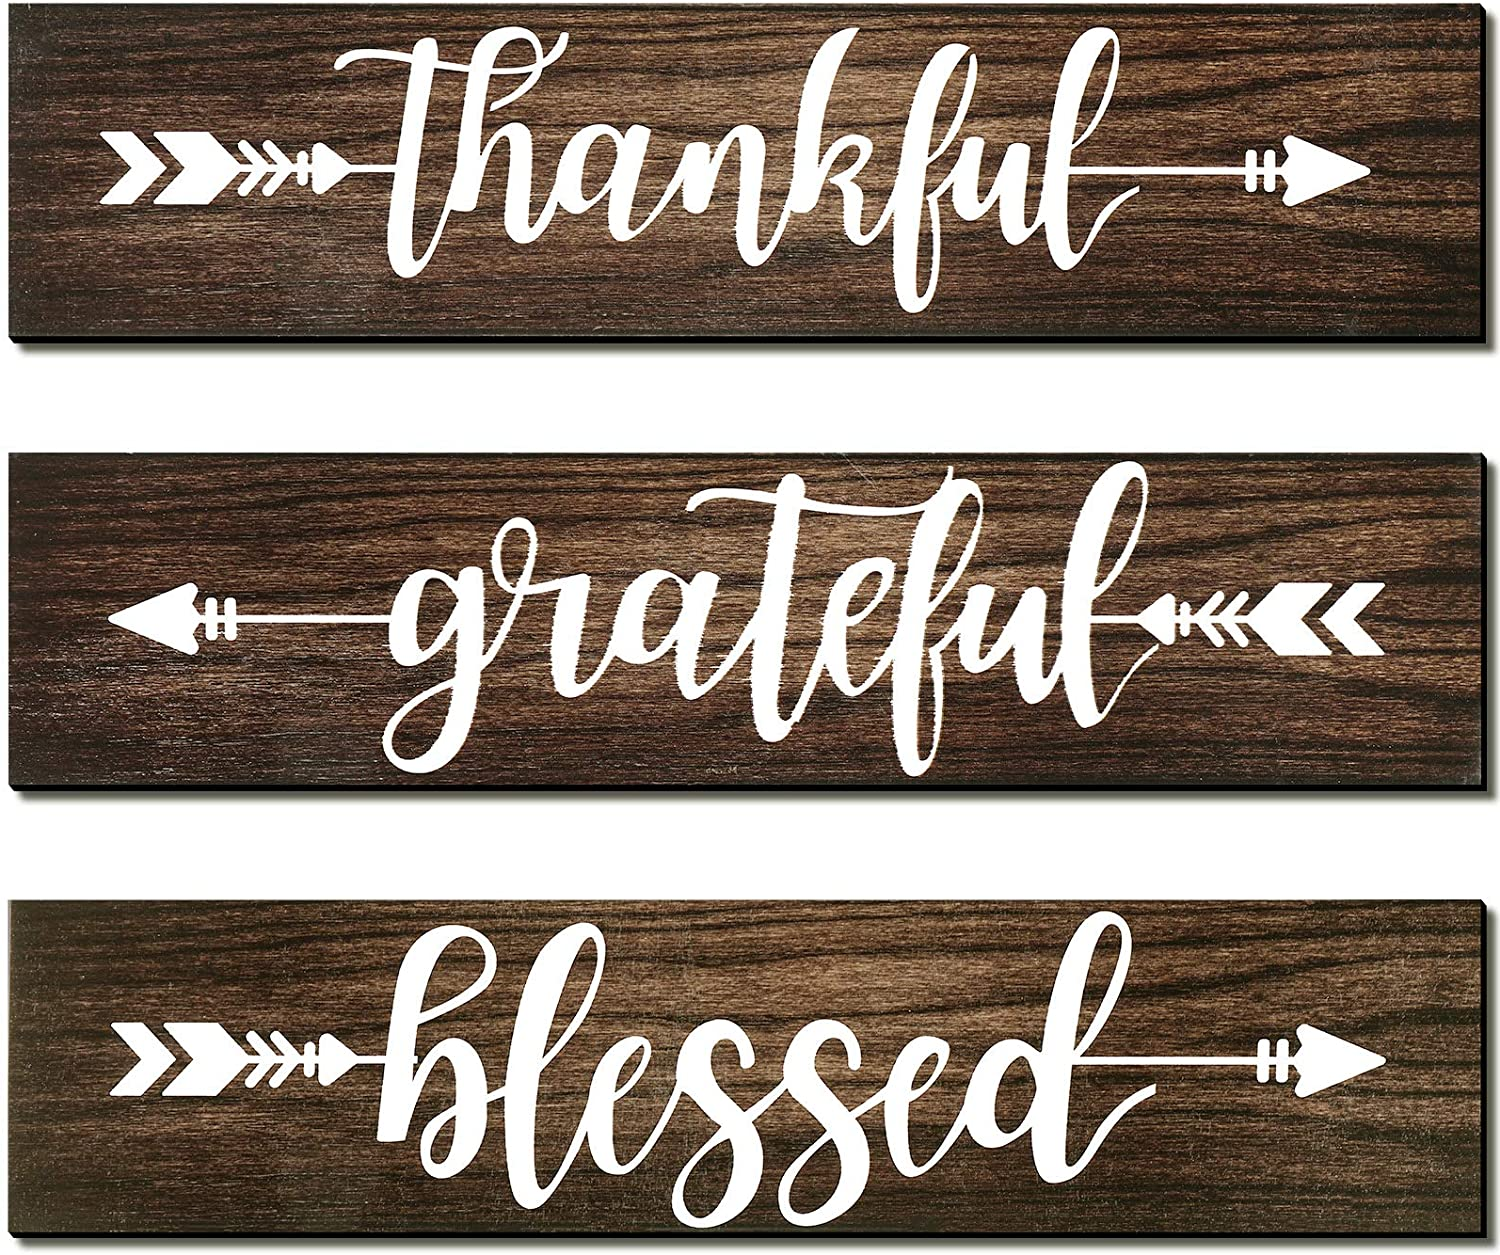 Jetec 3 Pieces Thankful Grateful Blessed Wooden Signs Rustic Wood Arrow Hanging Plaque Sign Wall Art Decor for Farmhouse Entryway Outdoor Decor, 13 x 3 Inch (Brown)